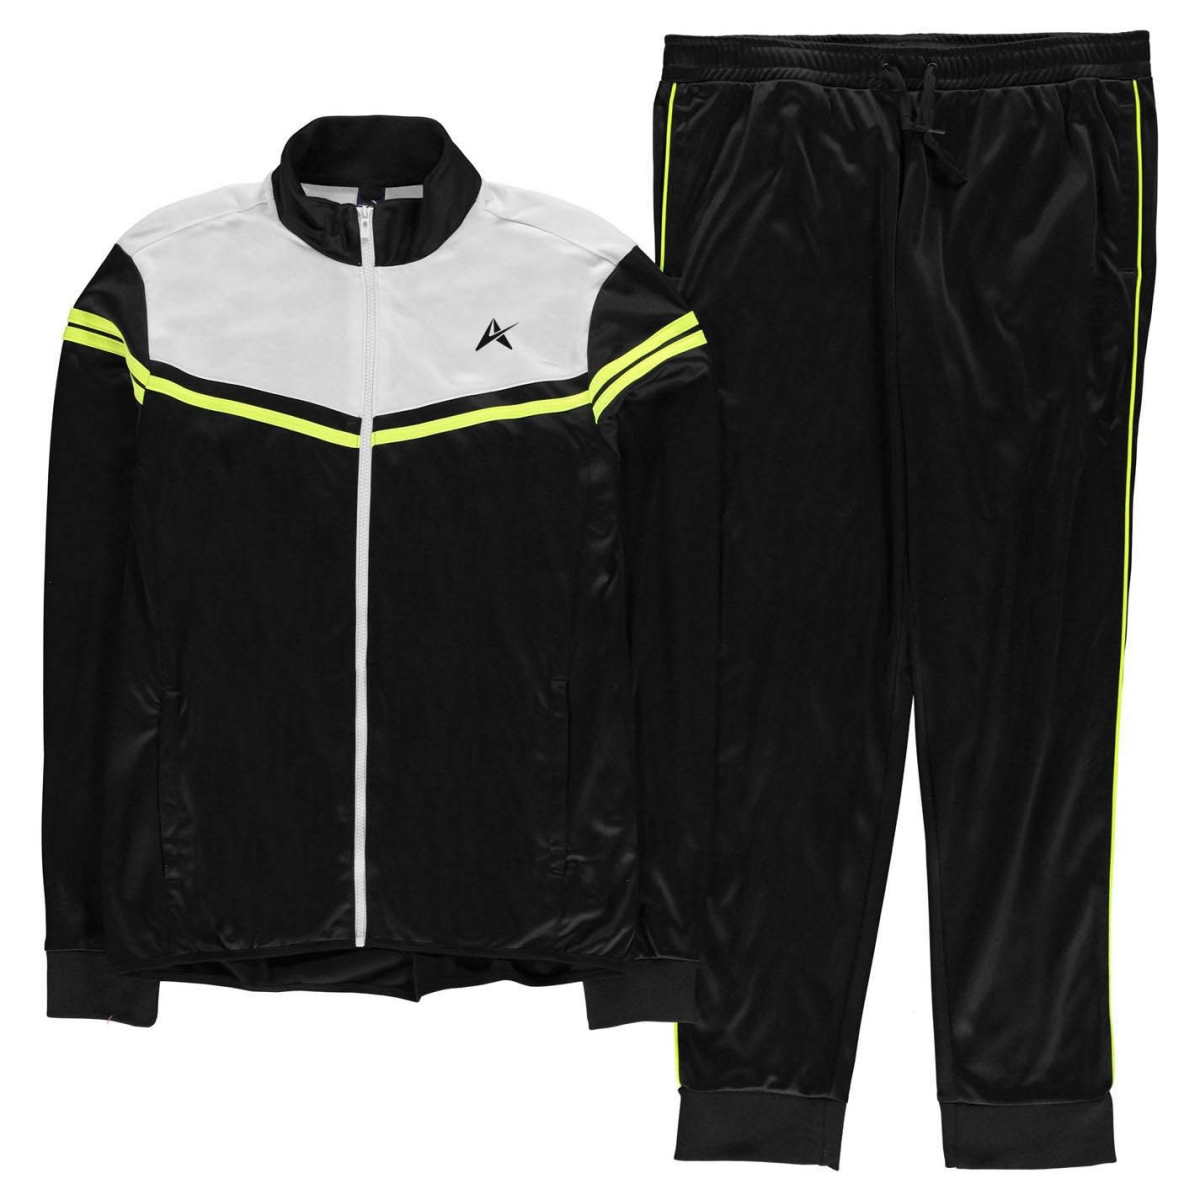 Men's Jogging Sports Suit Long Sleeve  A1-508